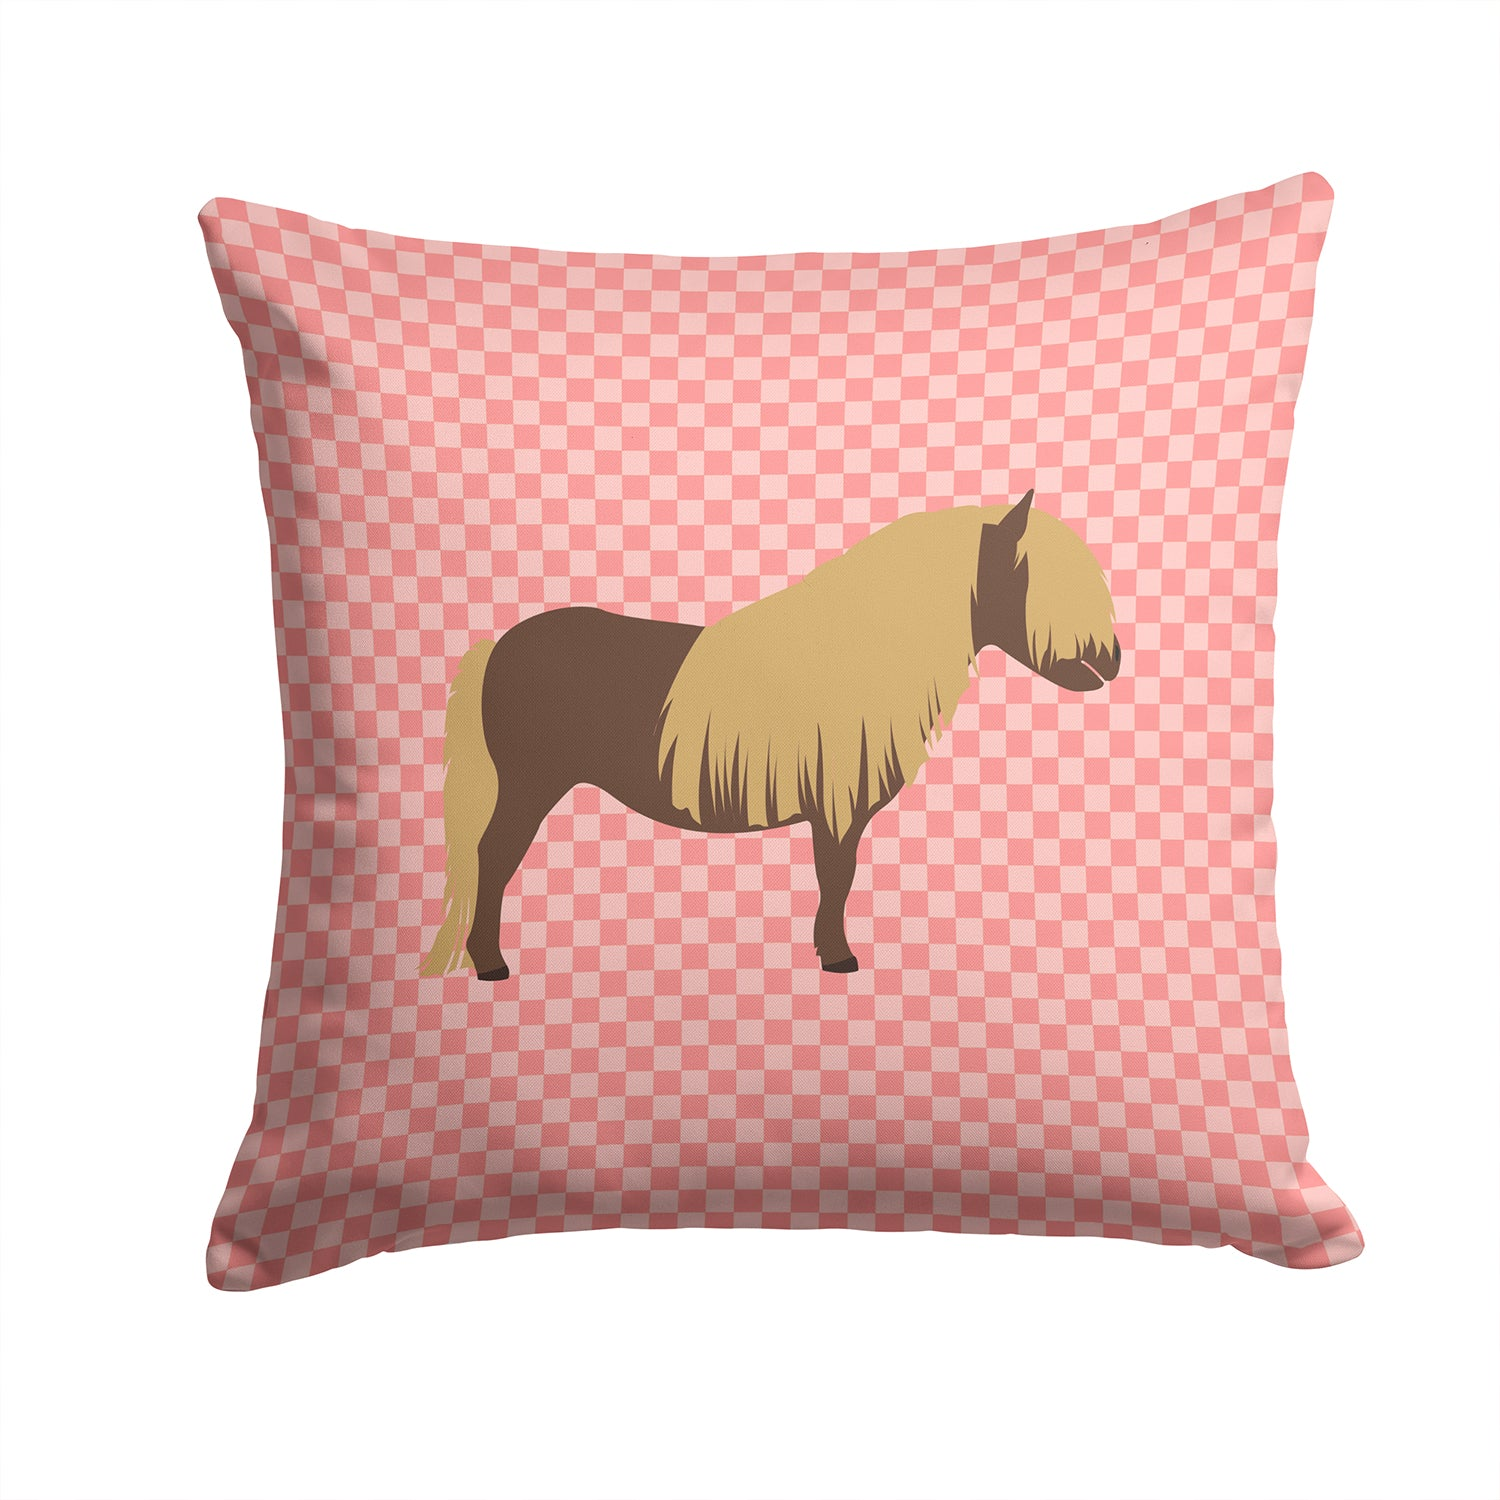 Shetland Pony Horse Pink Check Fabric Decorative Pillow BB7914PW1414 by Caroline's Treasures